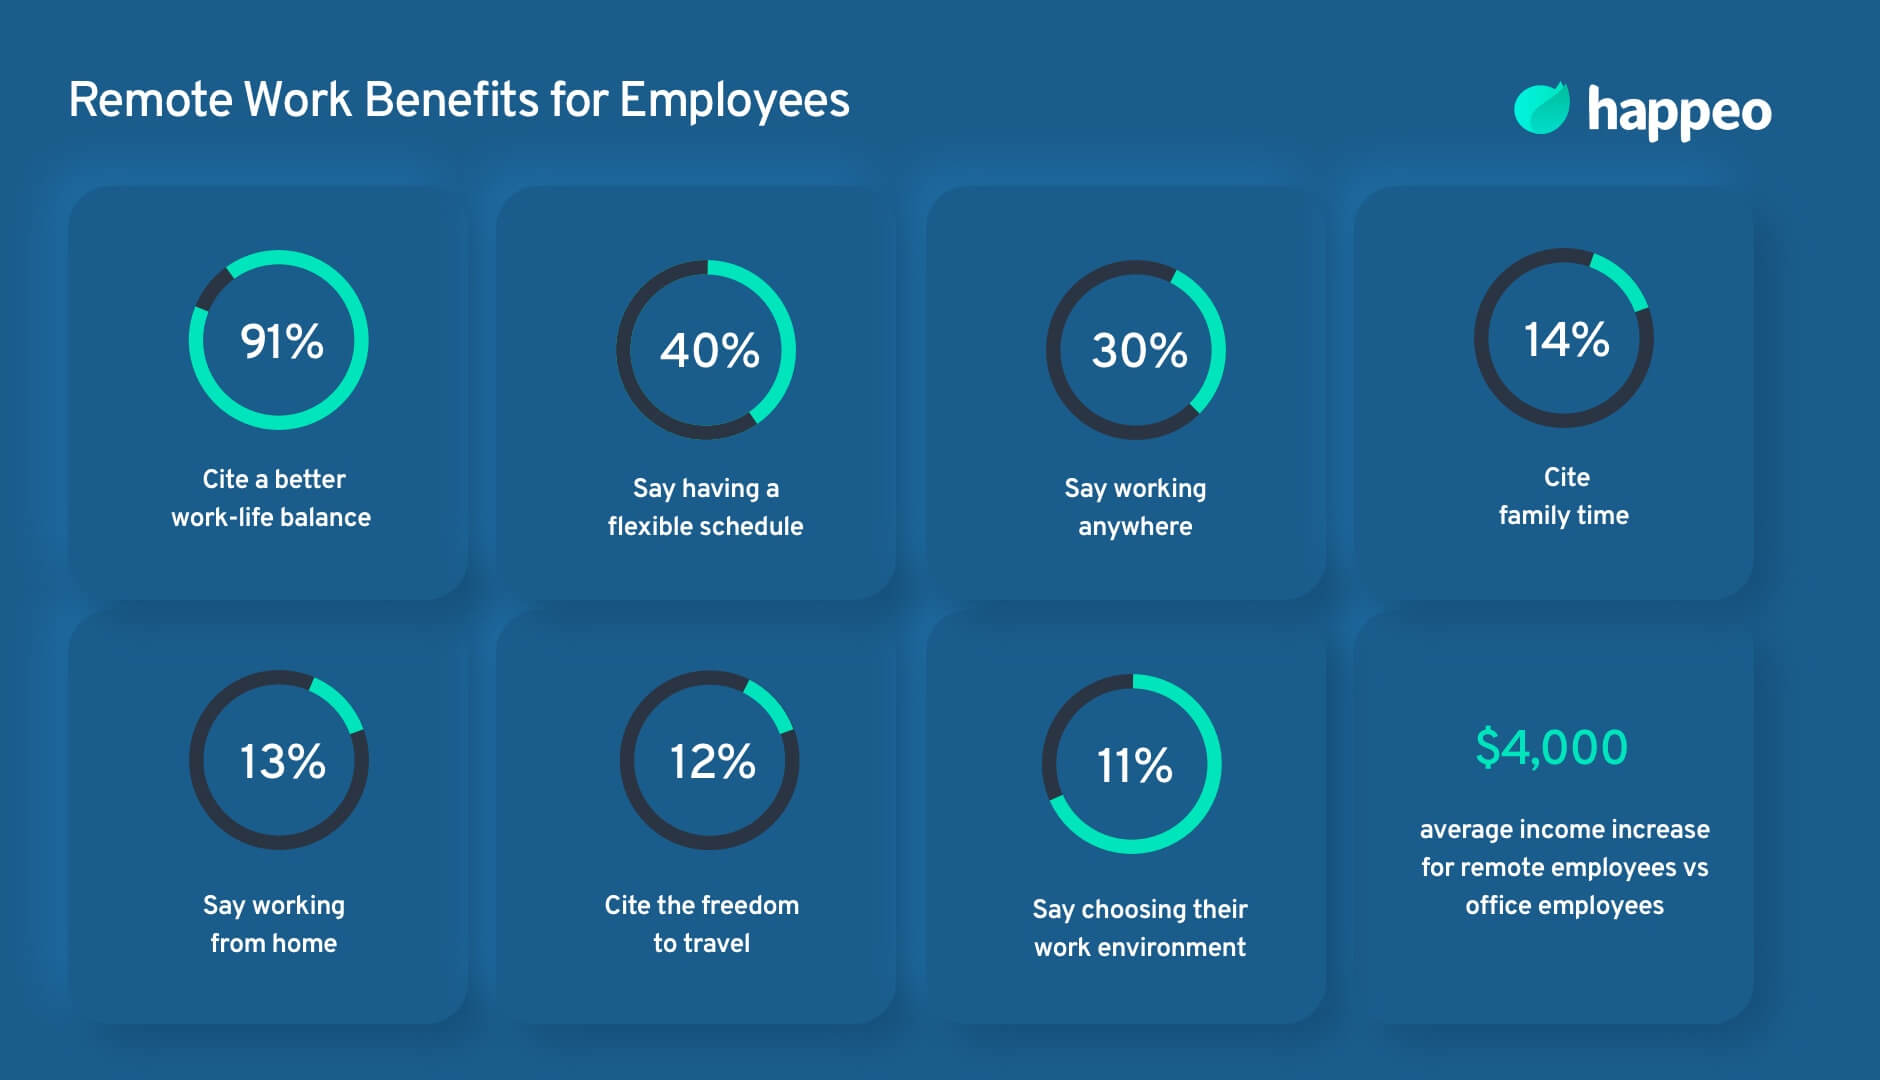 remote work benefits for employees